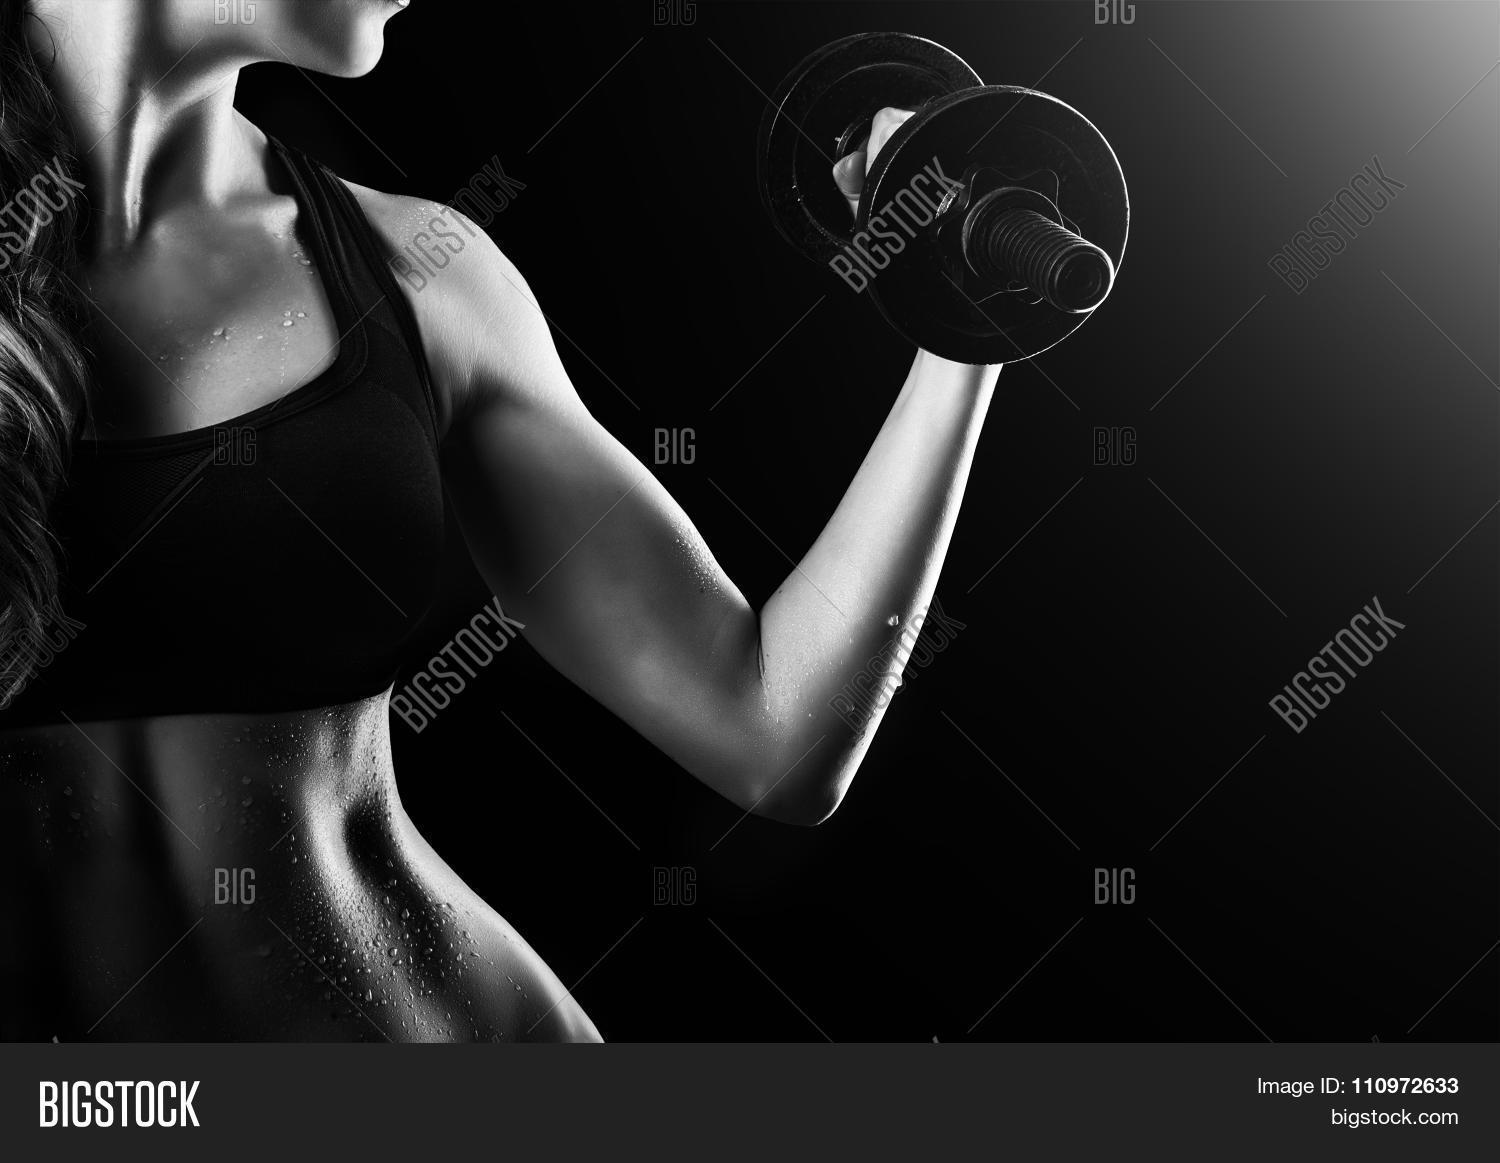 Female Muscular Arms Image Photo Free Trial Bigstock